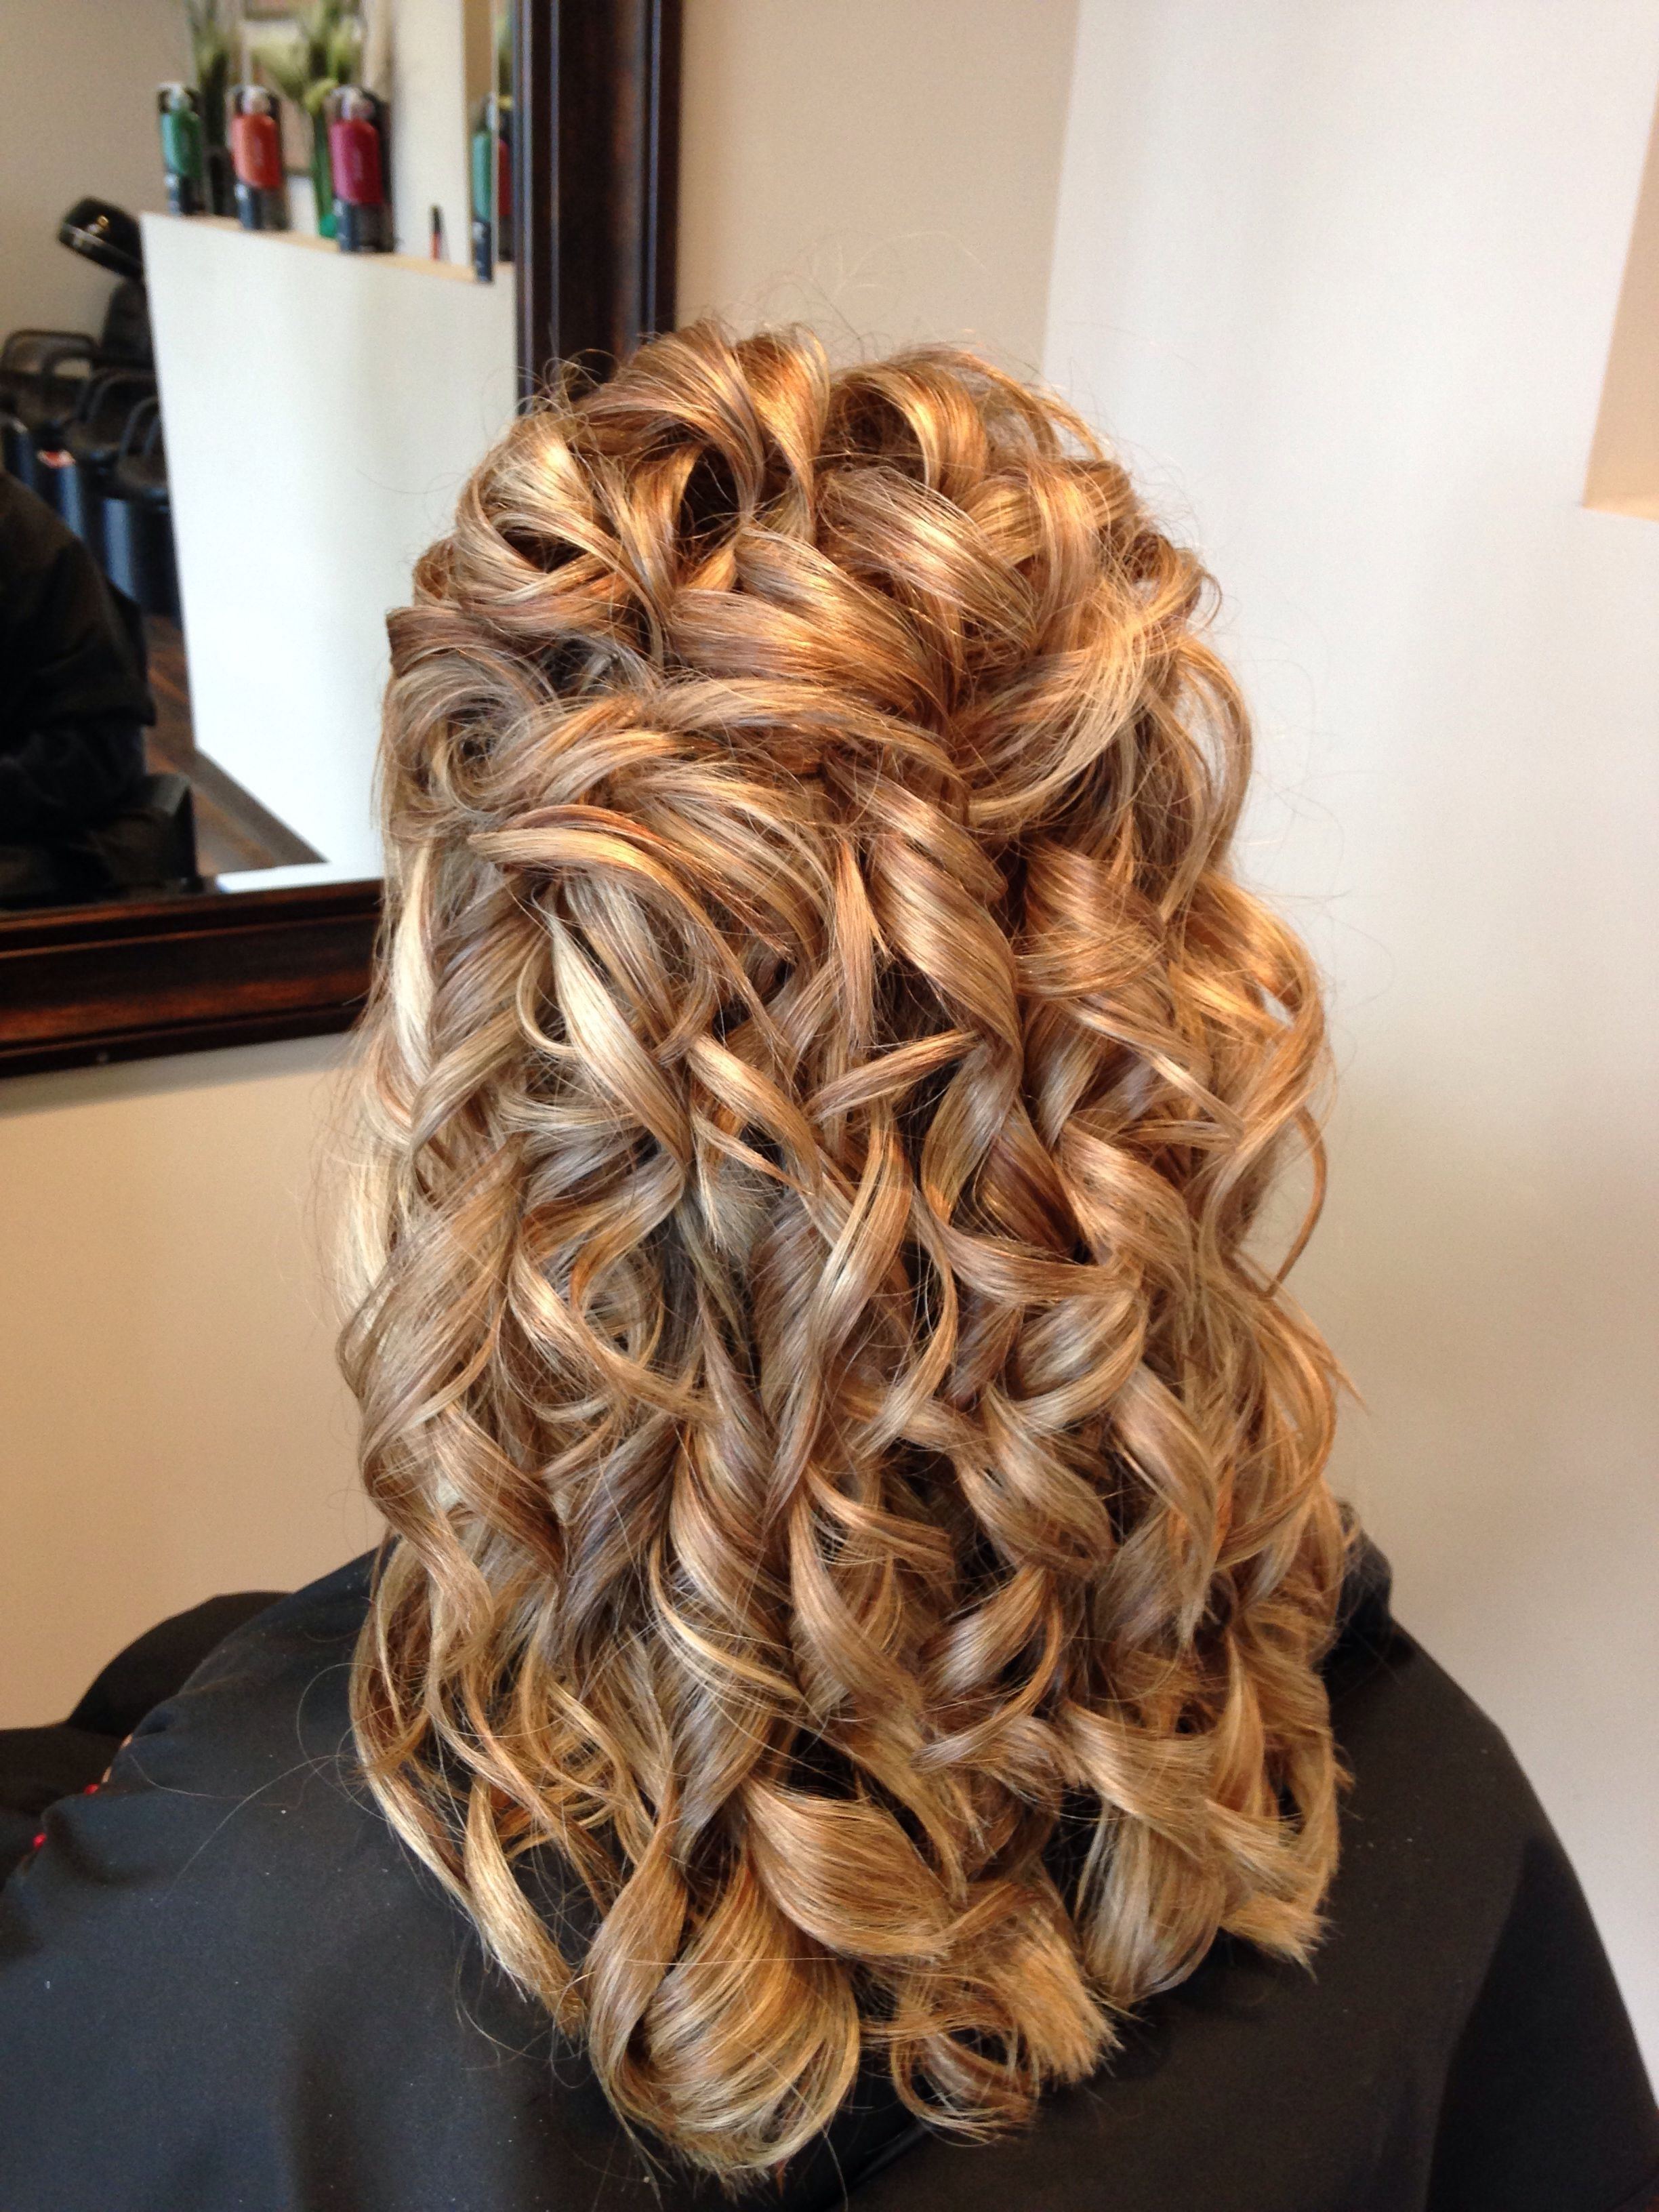 For My Sons Wedding, Partial Updo, Formal, Wedding, Hairstyles, Long Within Recent Partial Updo Wedding Hairstyles (View 11 of 15)